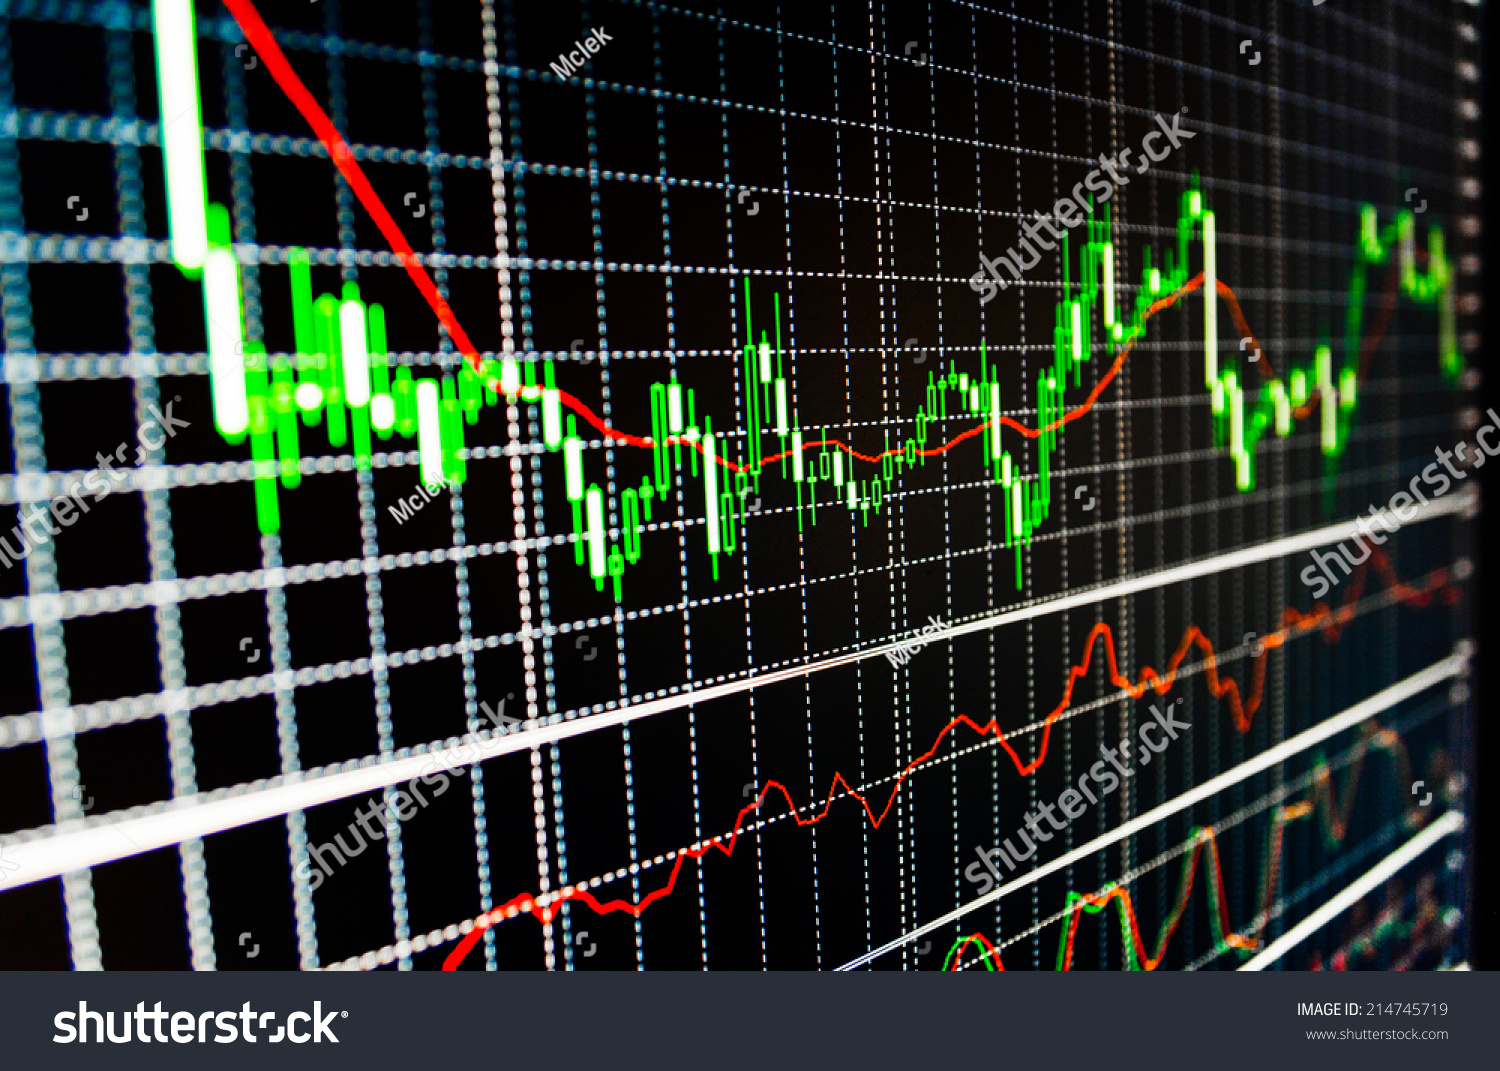 Ac-markets live forex quotes